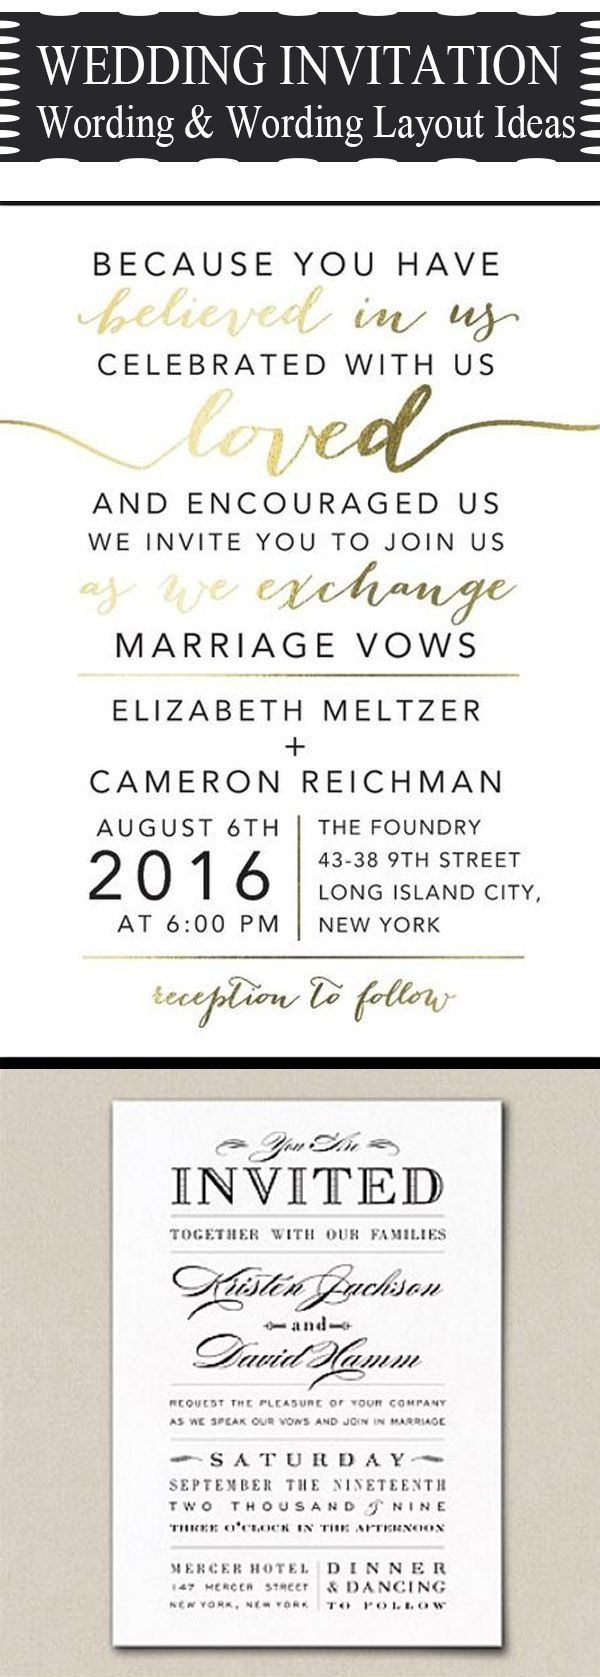 20 Popular Wedding Invitation Wording & DIY Templates Ideas